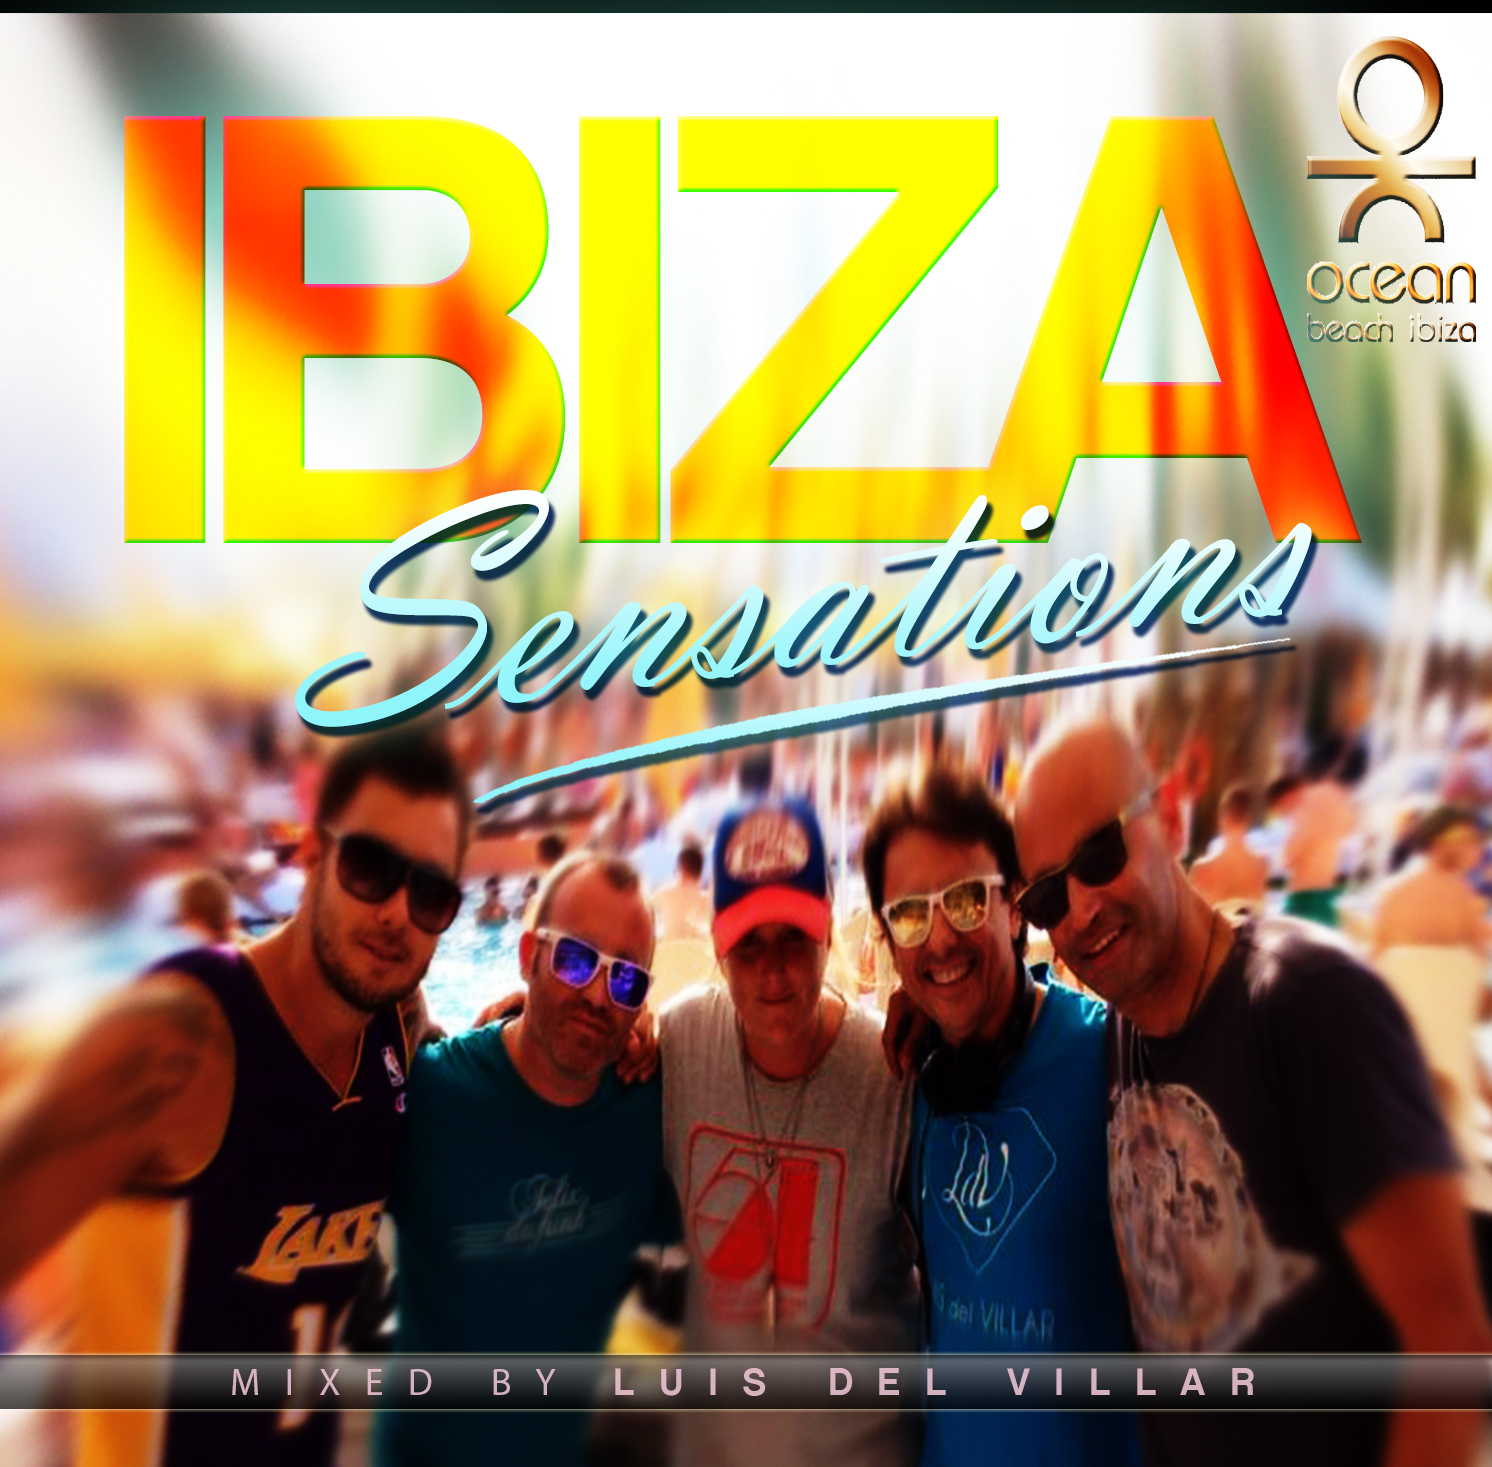 Artwork for Ibiza Sensations 98 @ Ministry of Sound London Sept. 5th 2014